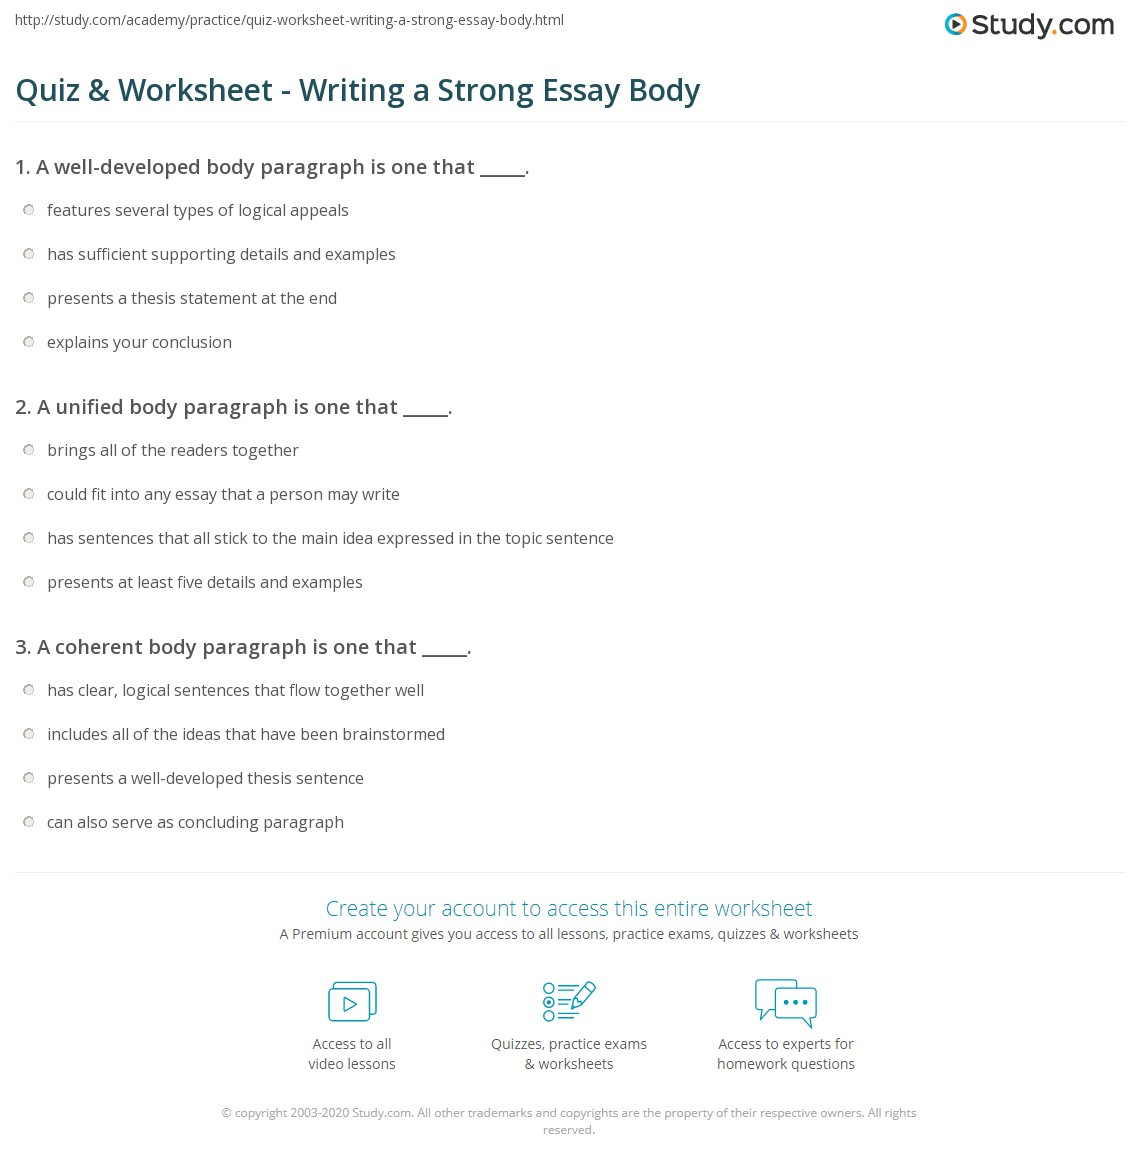 quiz worksheet writing a strong essay body com print how to write a strong essay body worksheet